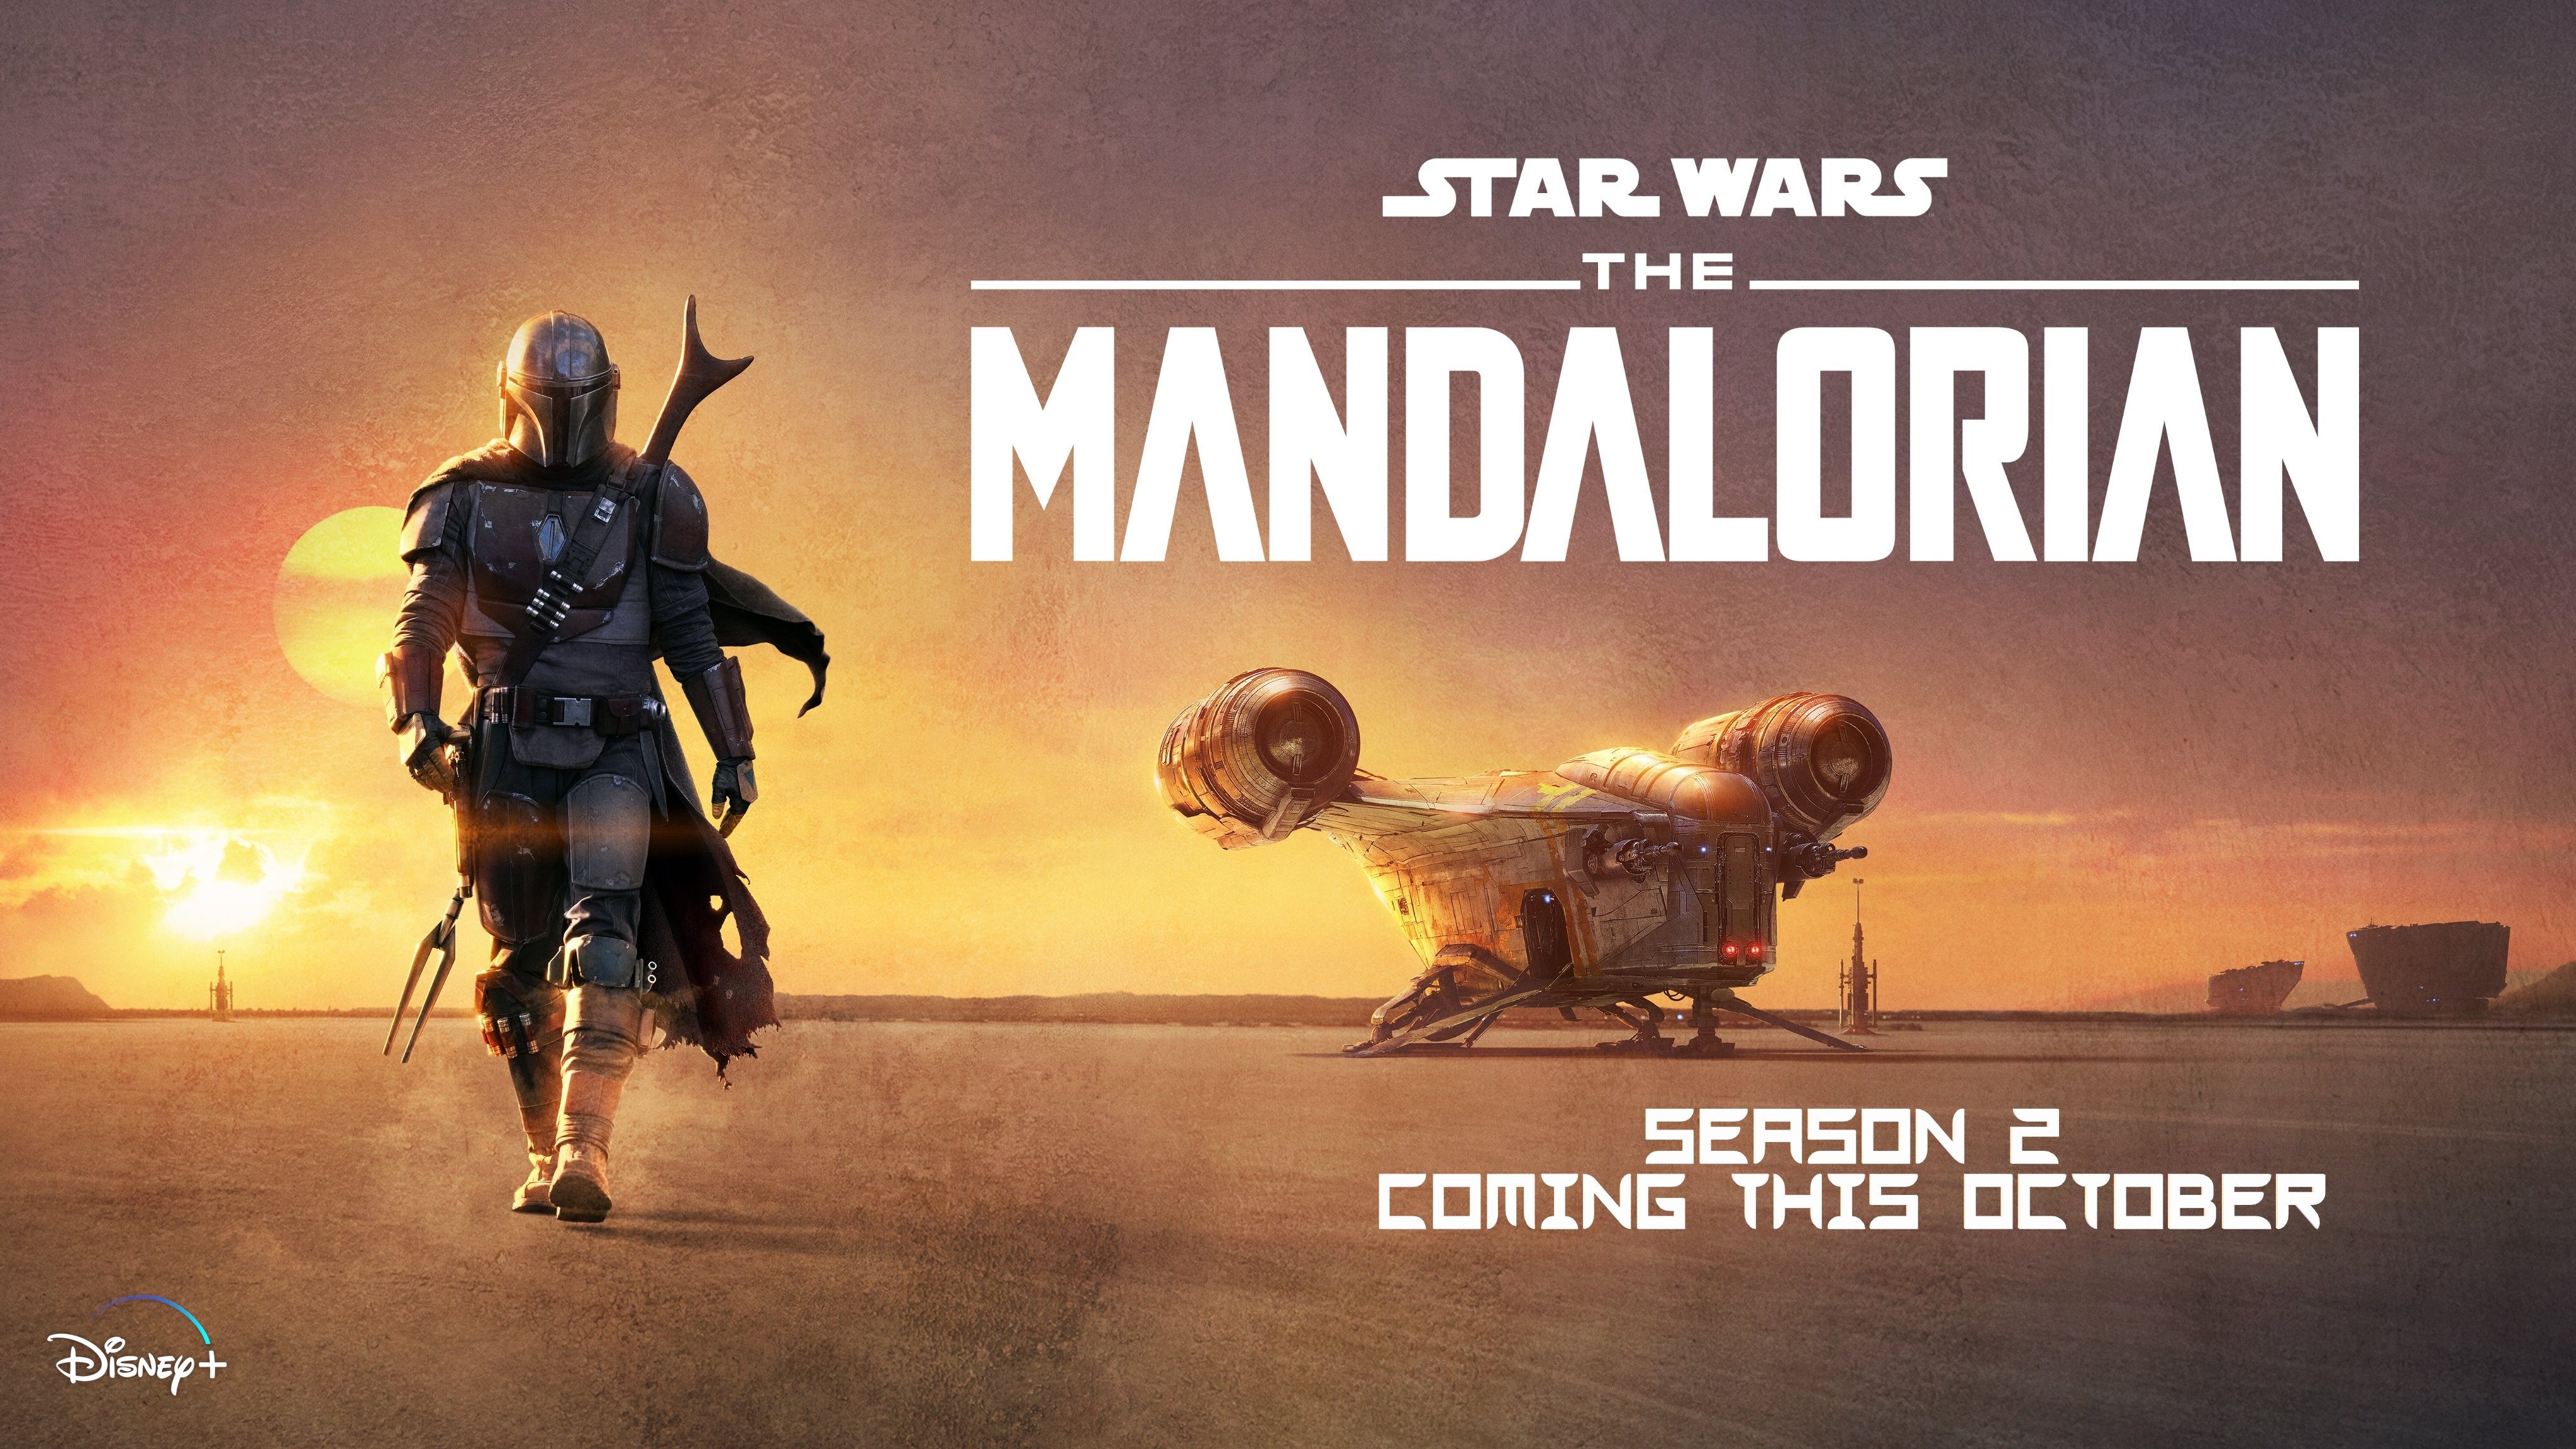 The Mandalorian Season 2 Will Debut This October Future Of The Force